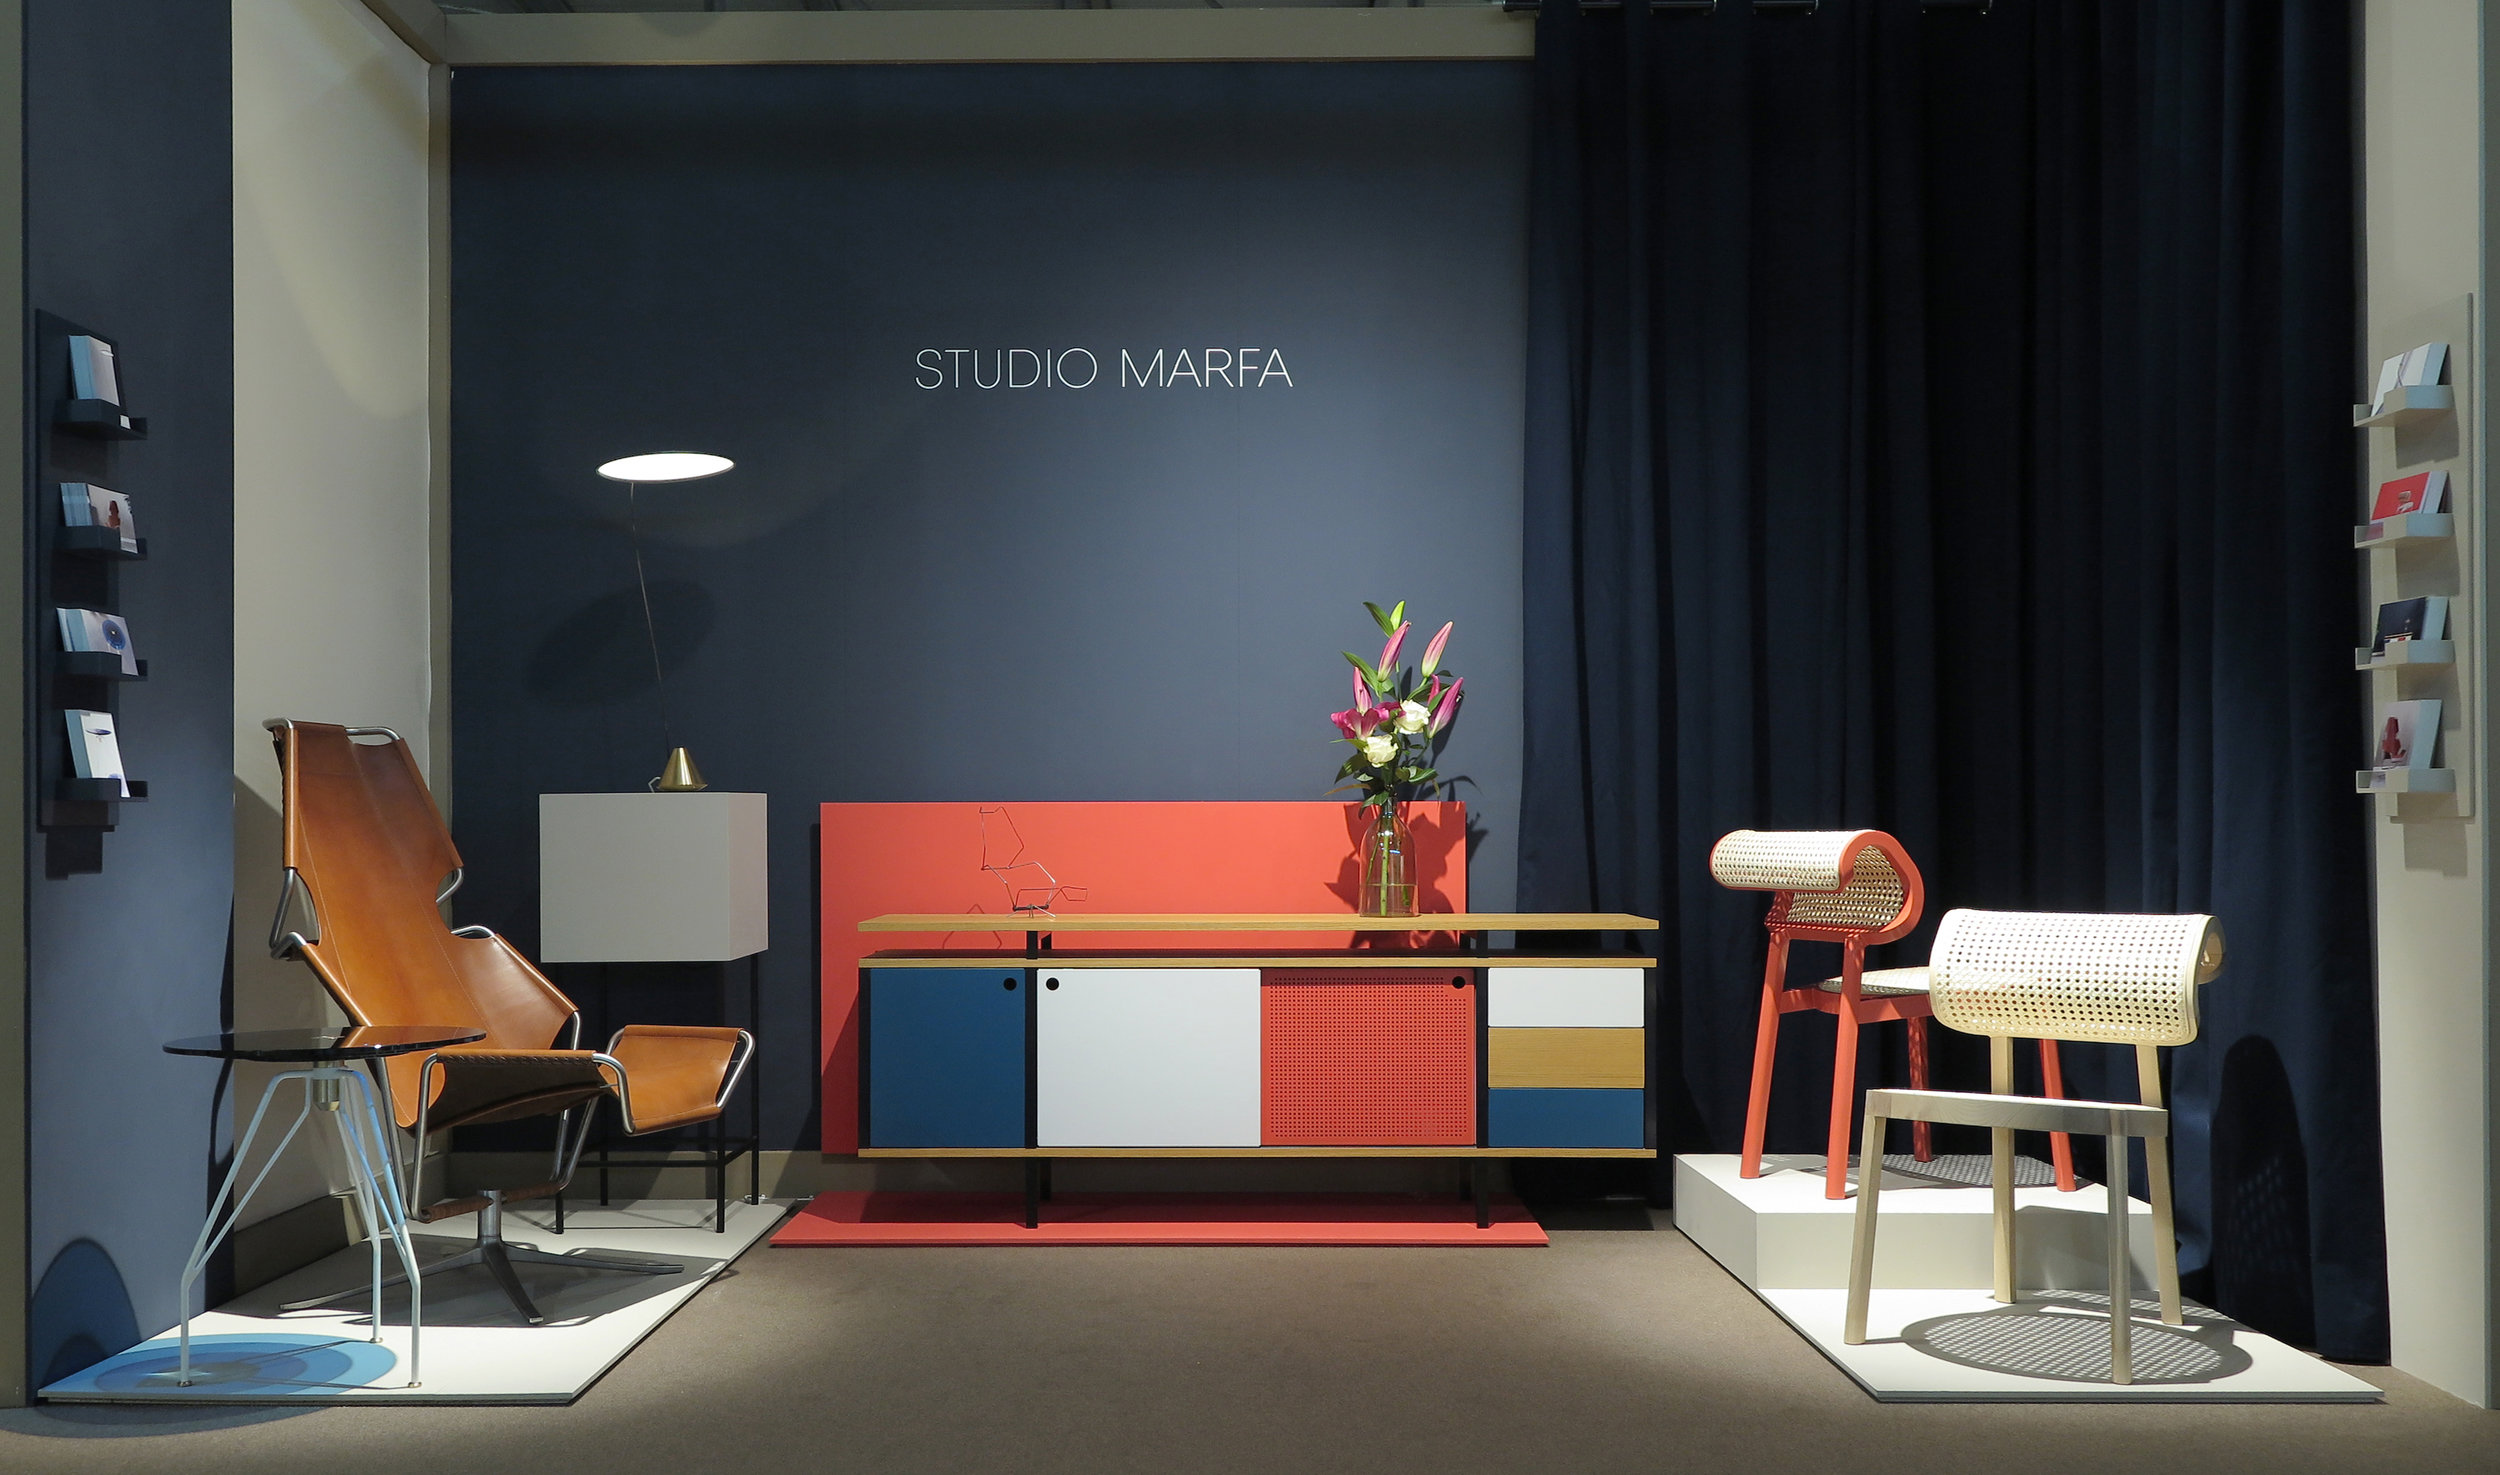 Our booth at the Salone Satellite